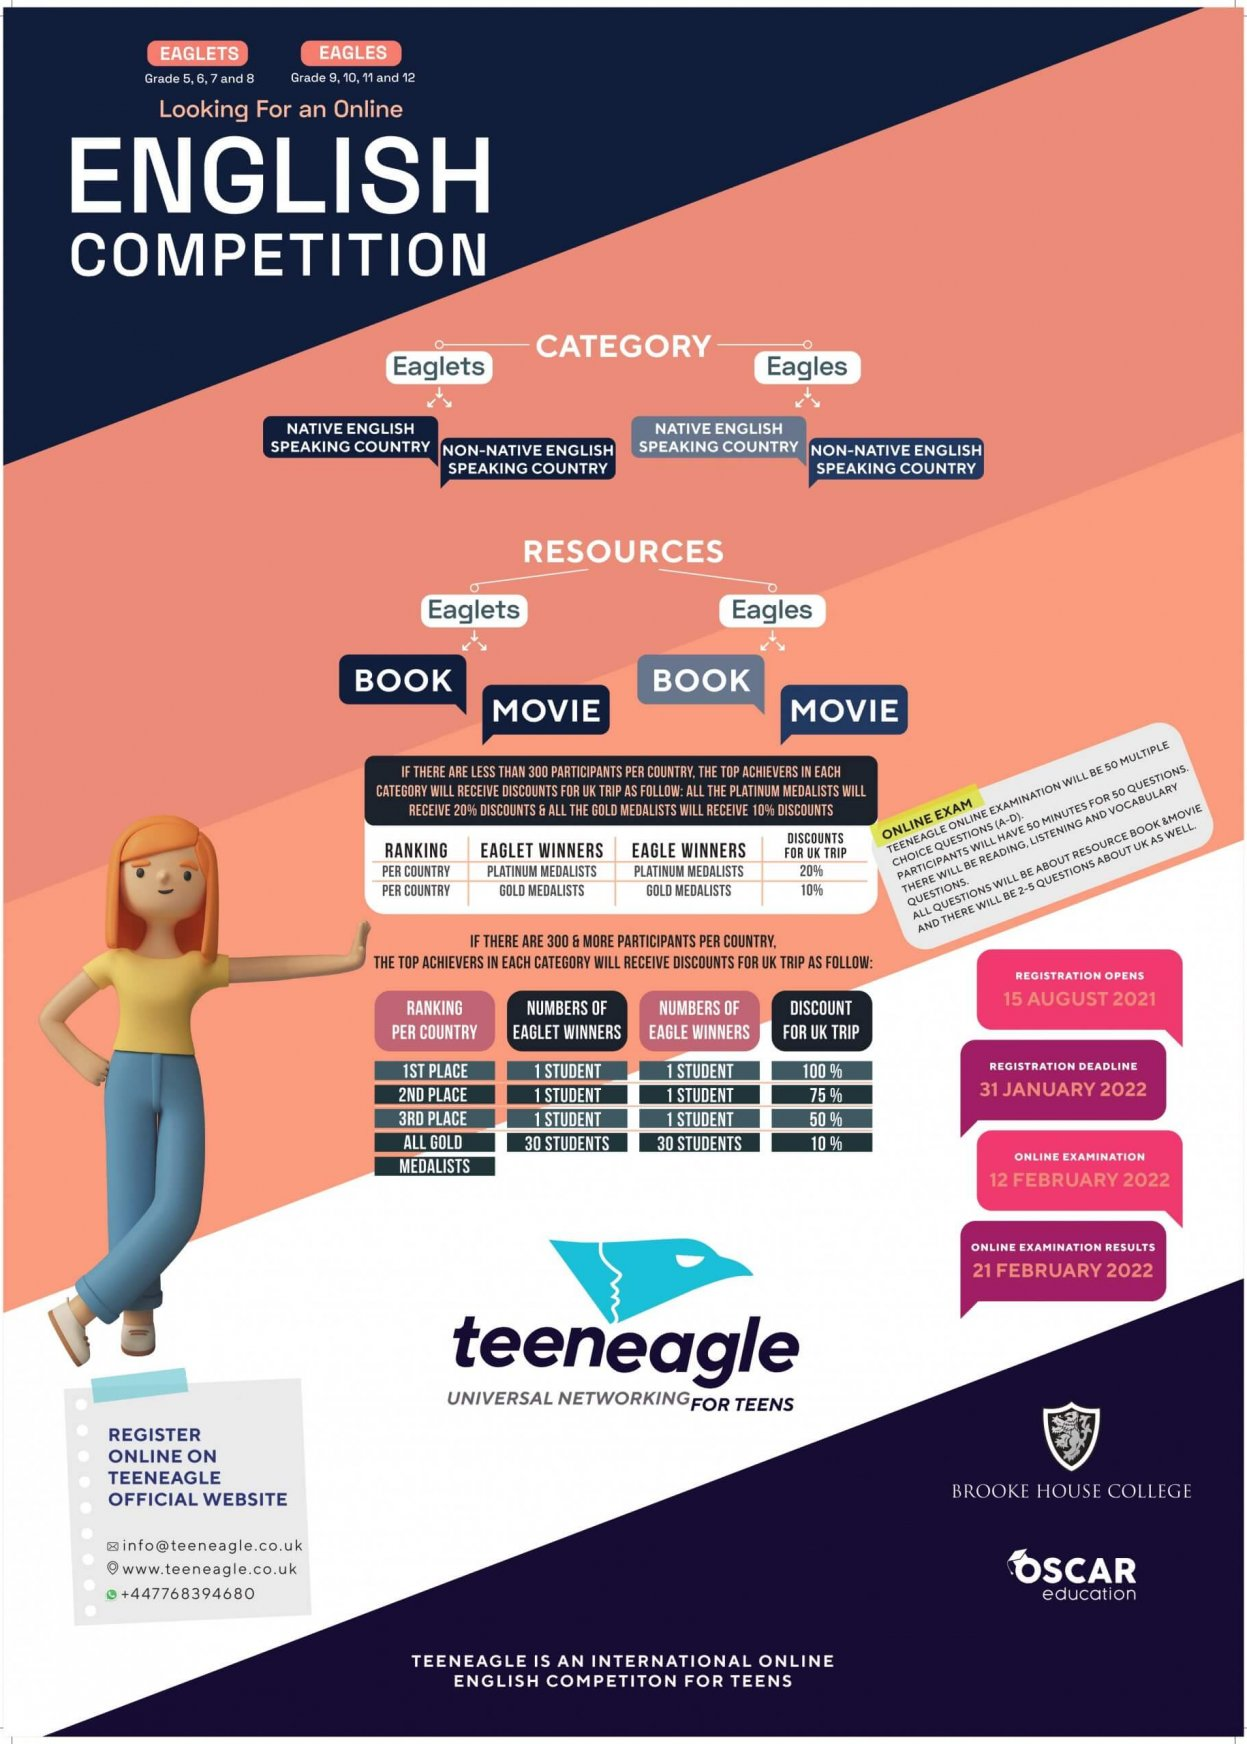 teeneagle poster 2022 online competition 1_page-0001